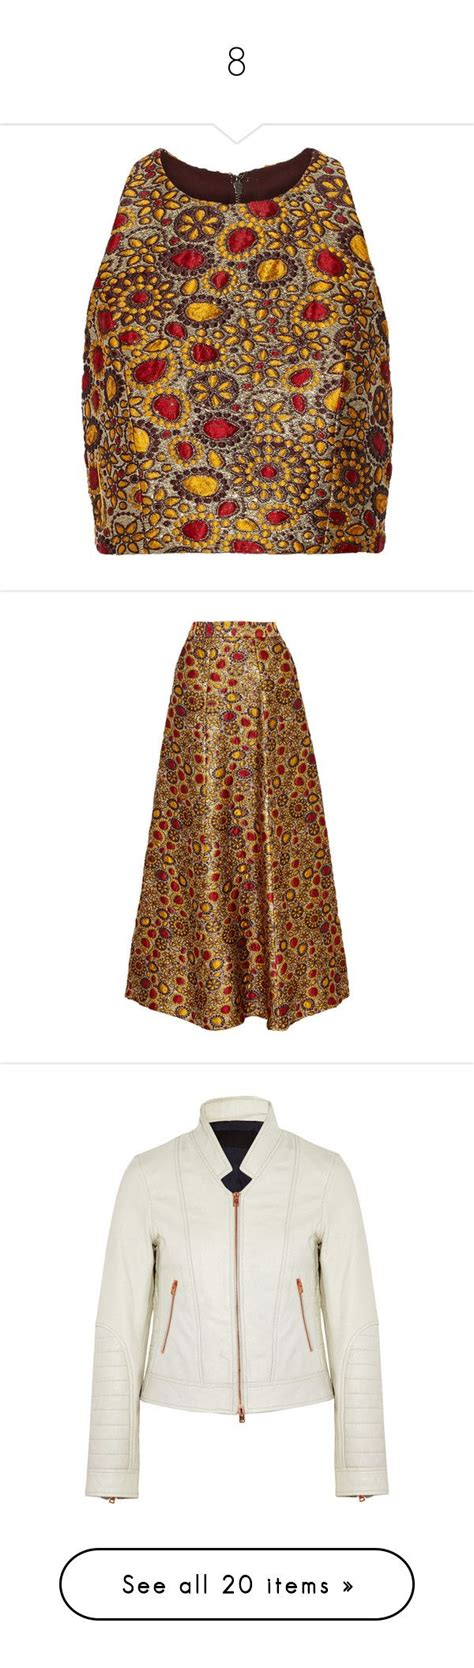 17 best ideas about brown maxi skirts on